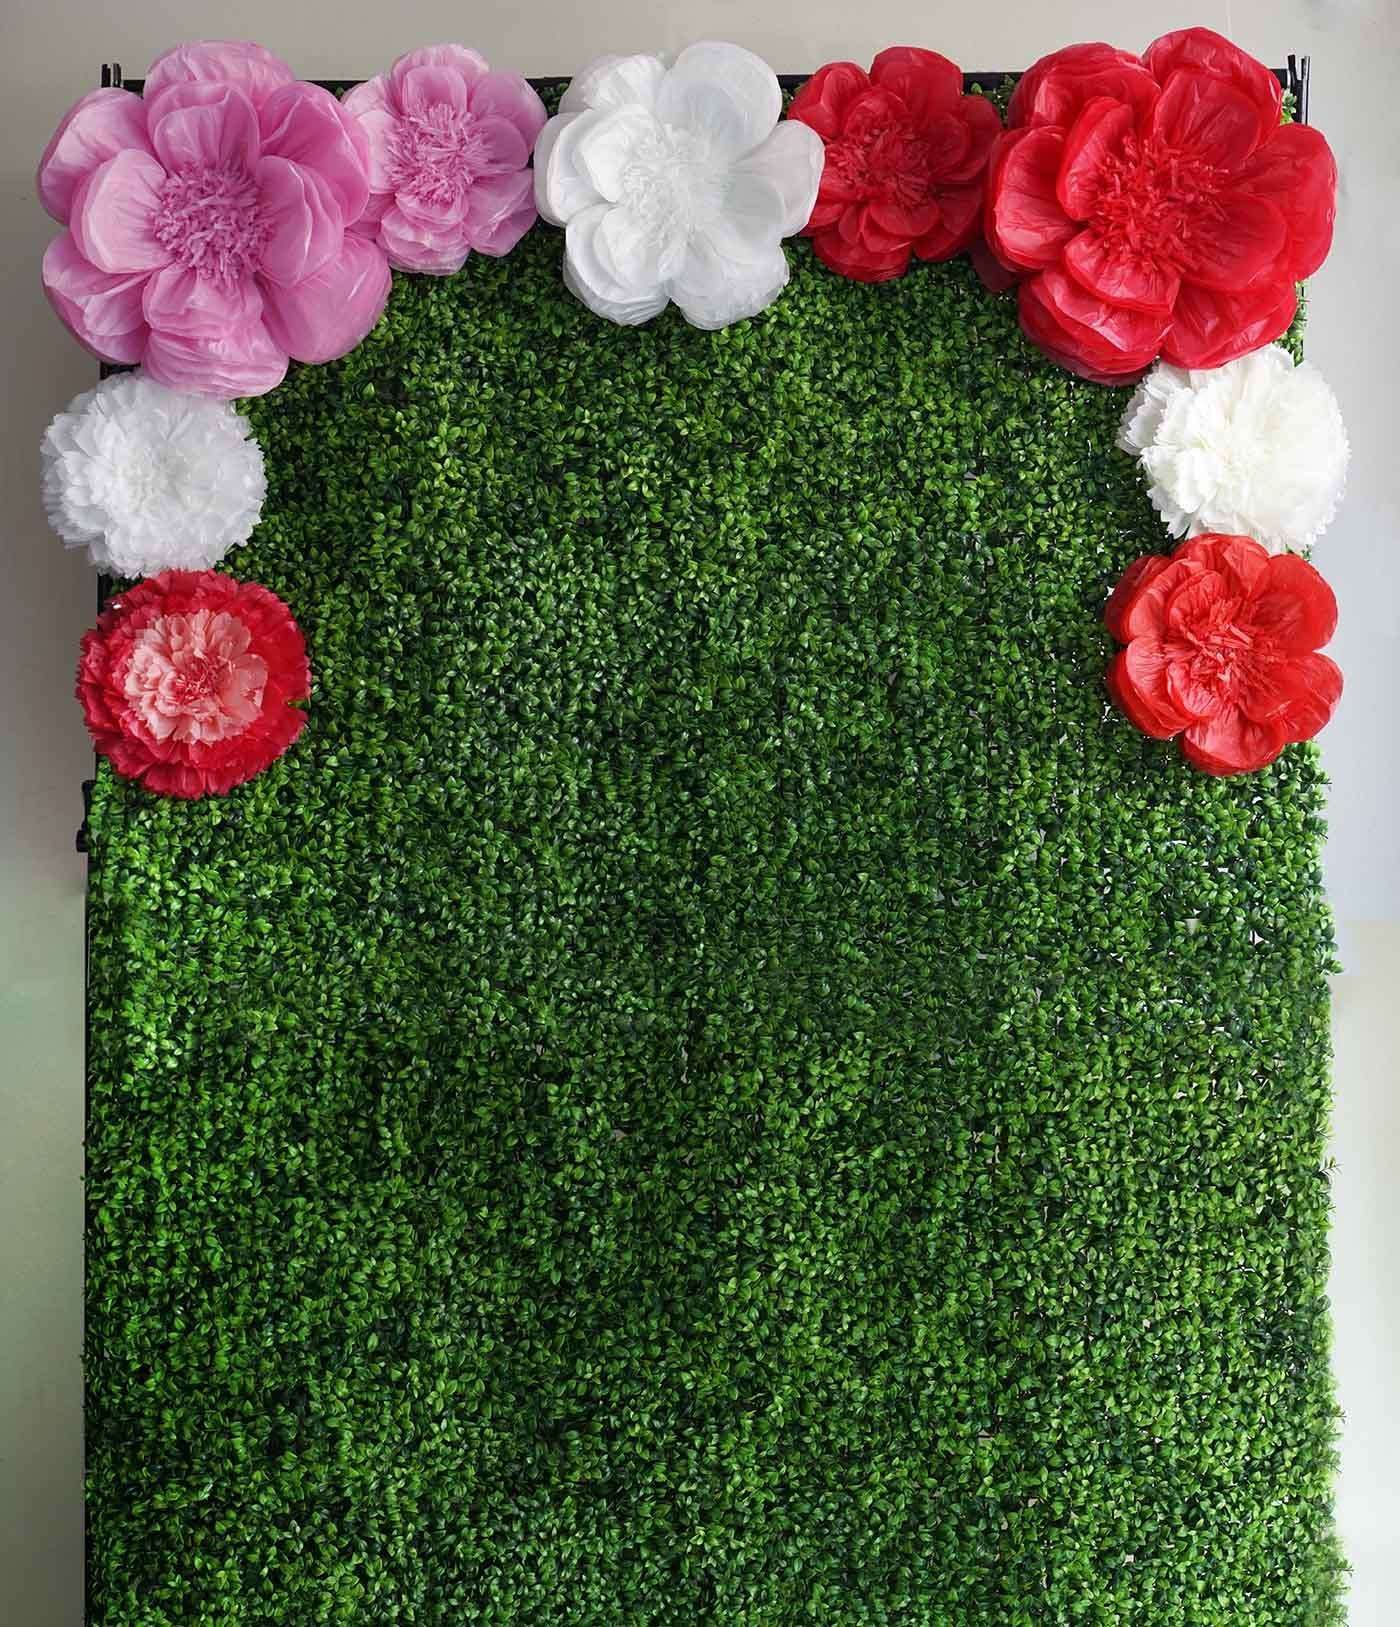 20 Purple Diy Giant Carnation Paper Flower Wall Backdrop Decor Chaircoverfactory